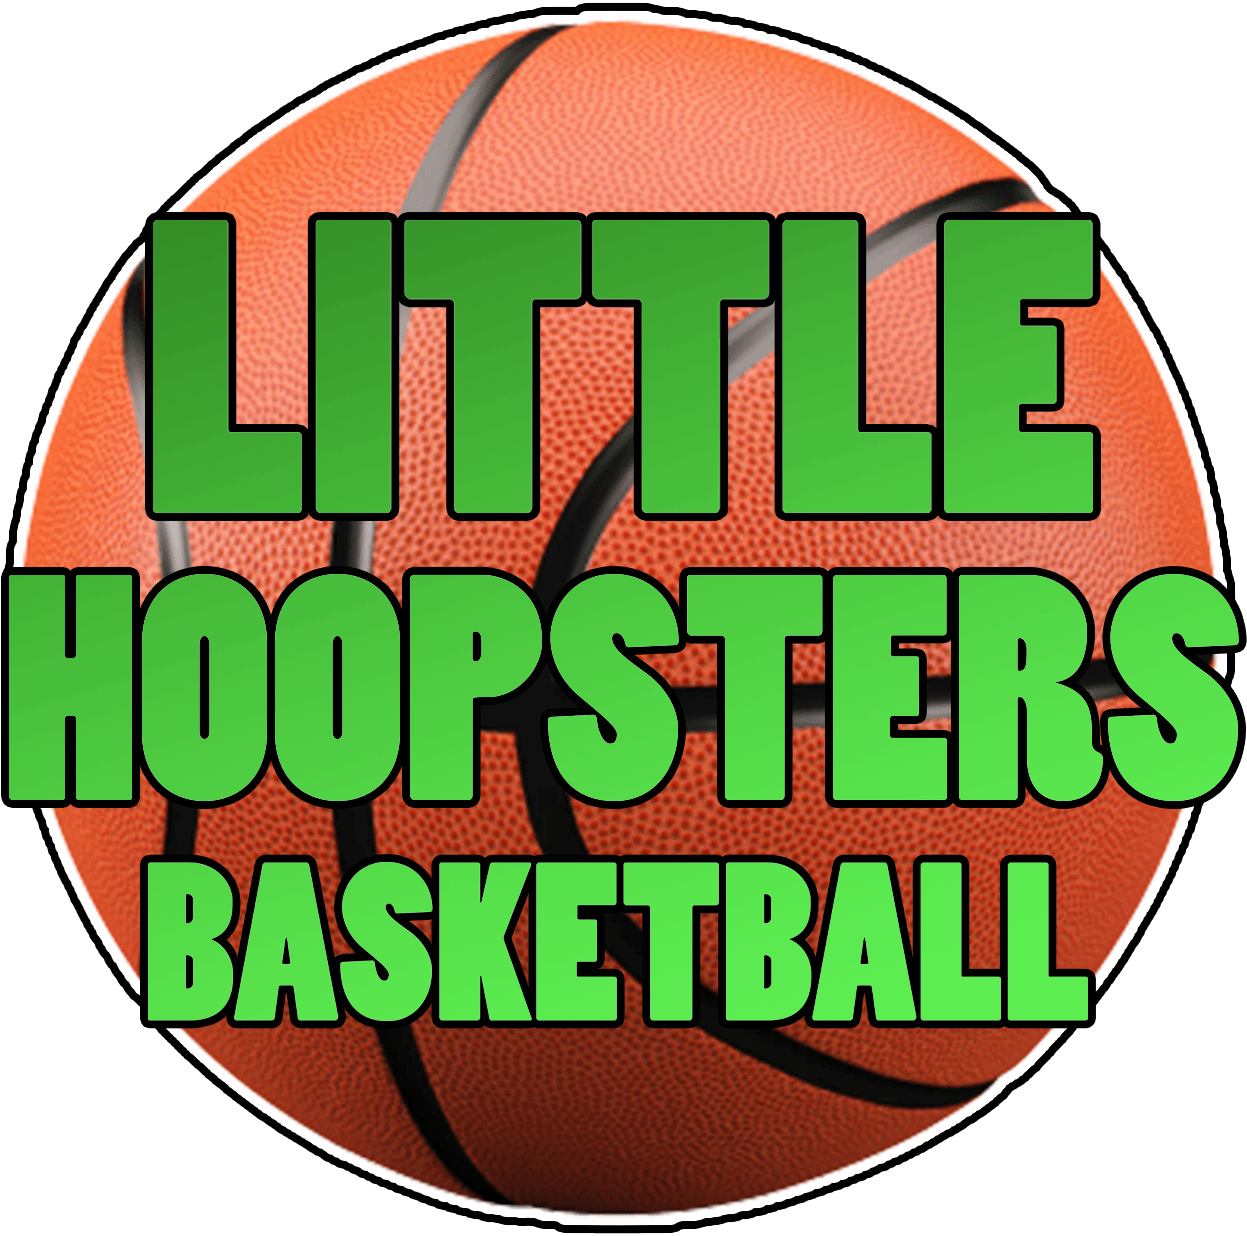 LittleHoopsters